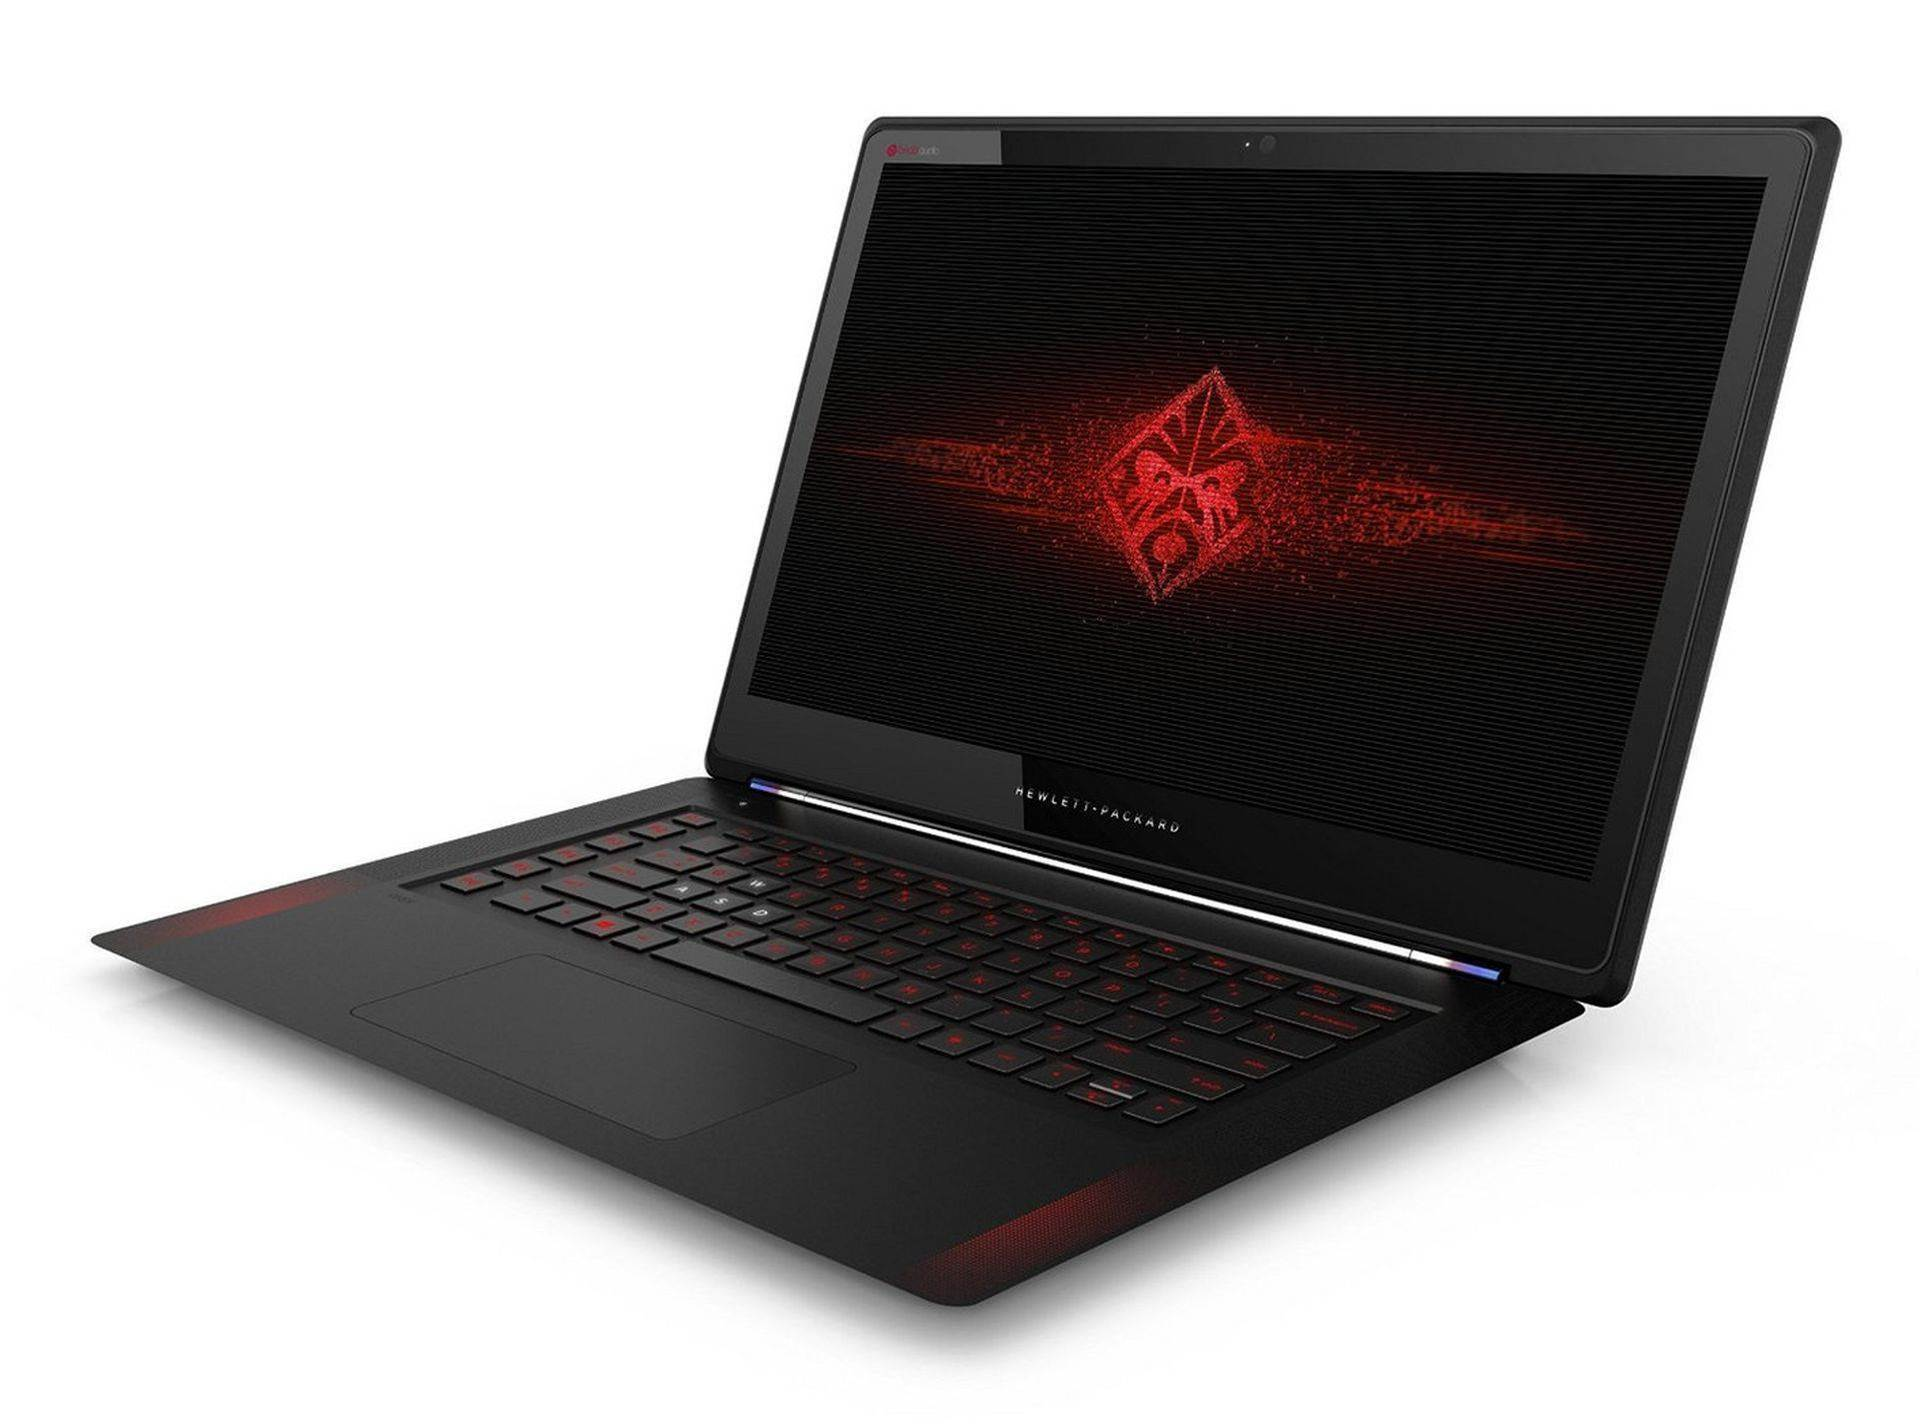 Review: HP Omen 15 gaming laptop